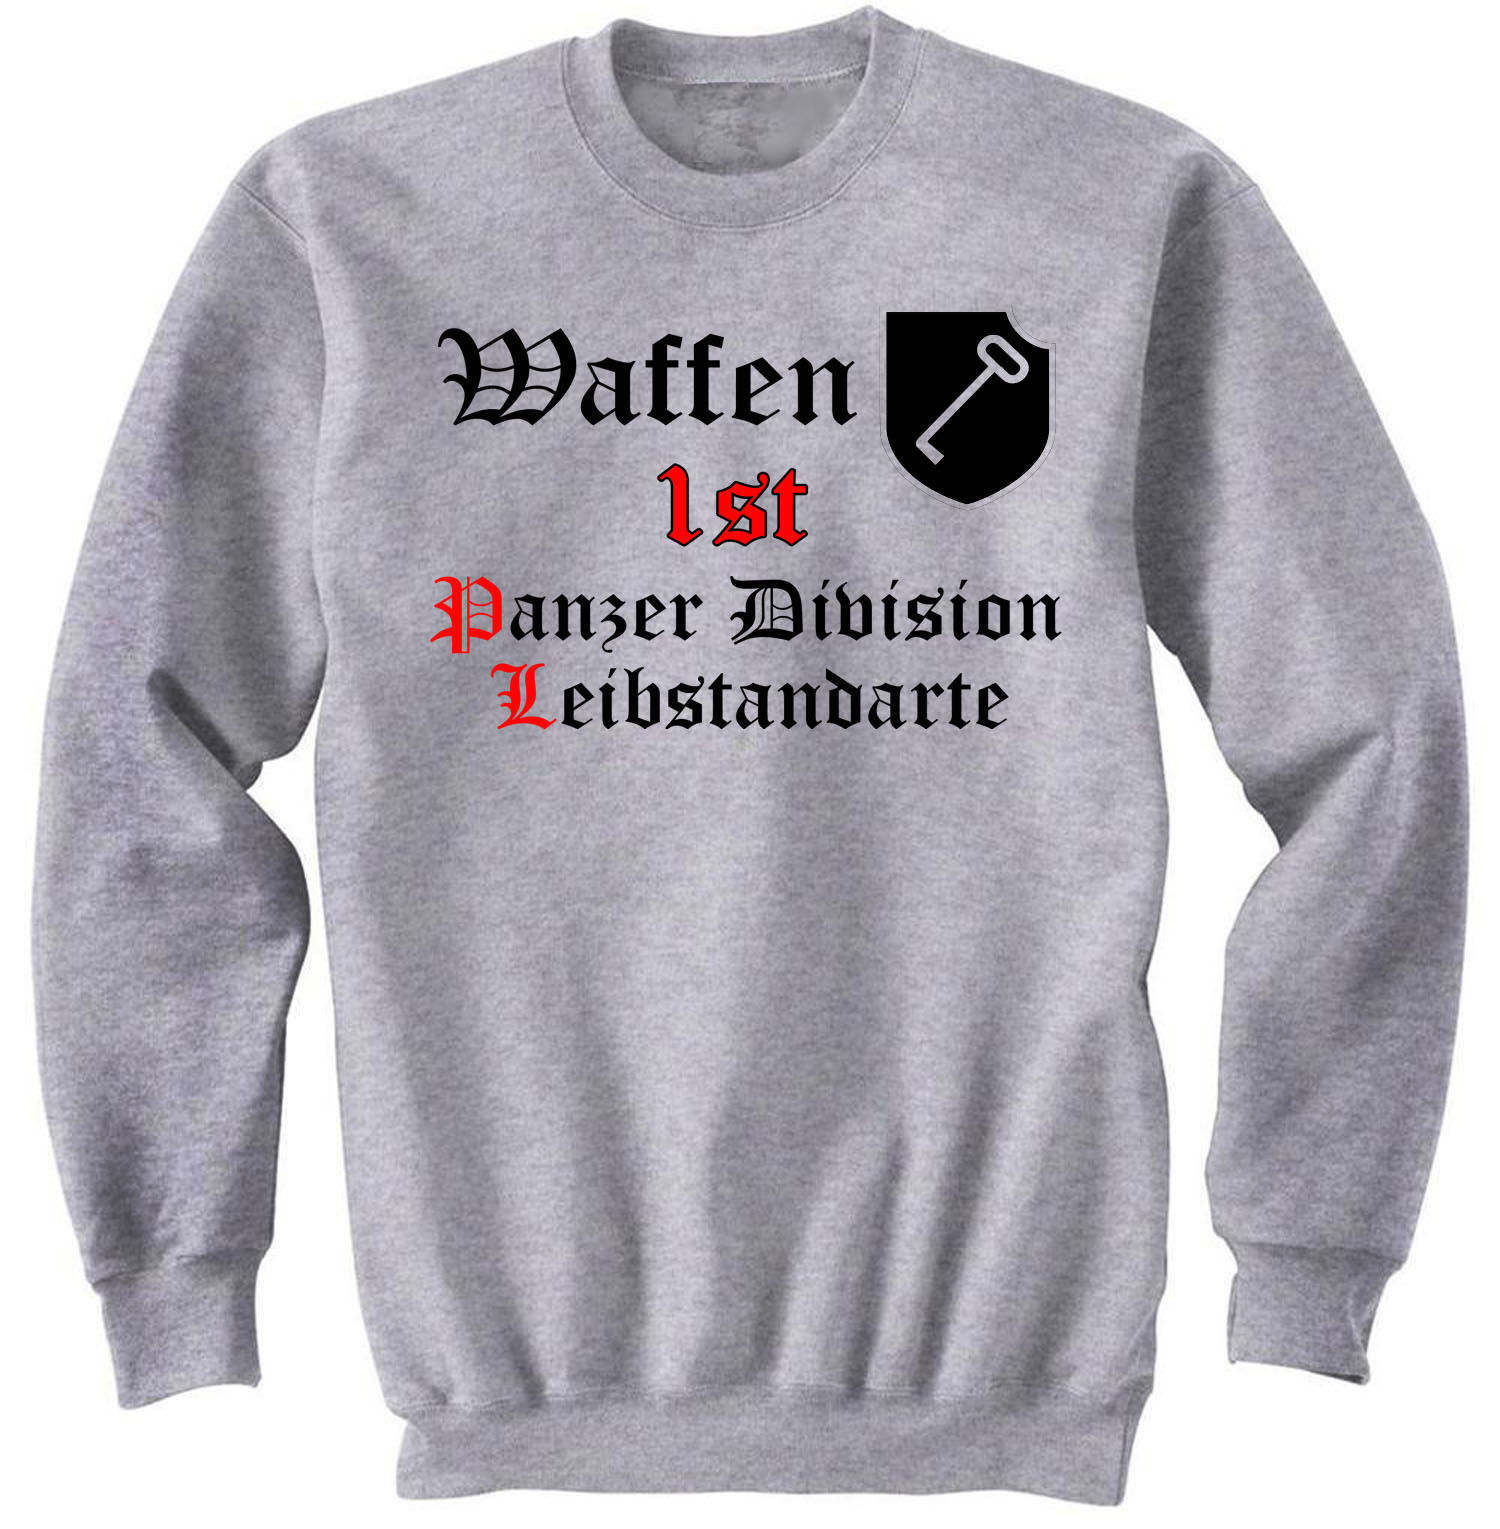 Primary image for WAFFEN 1ST DIVISION LEIBSTANDARTE - NEW GRAPHIC SWEATSHIRT- S-M-L-XL-XXL